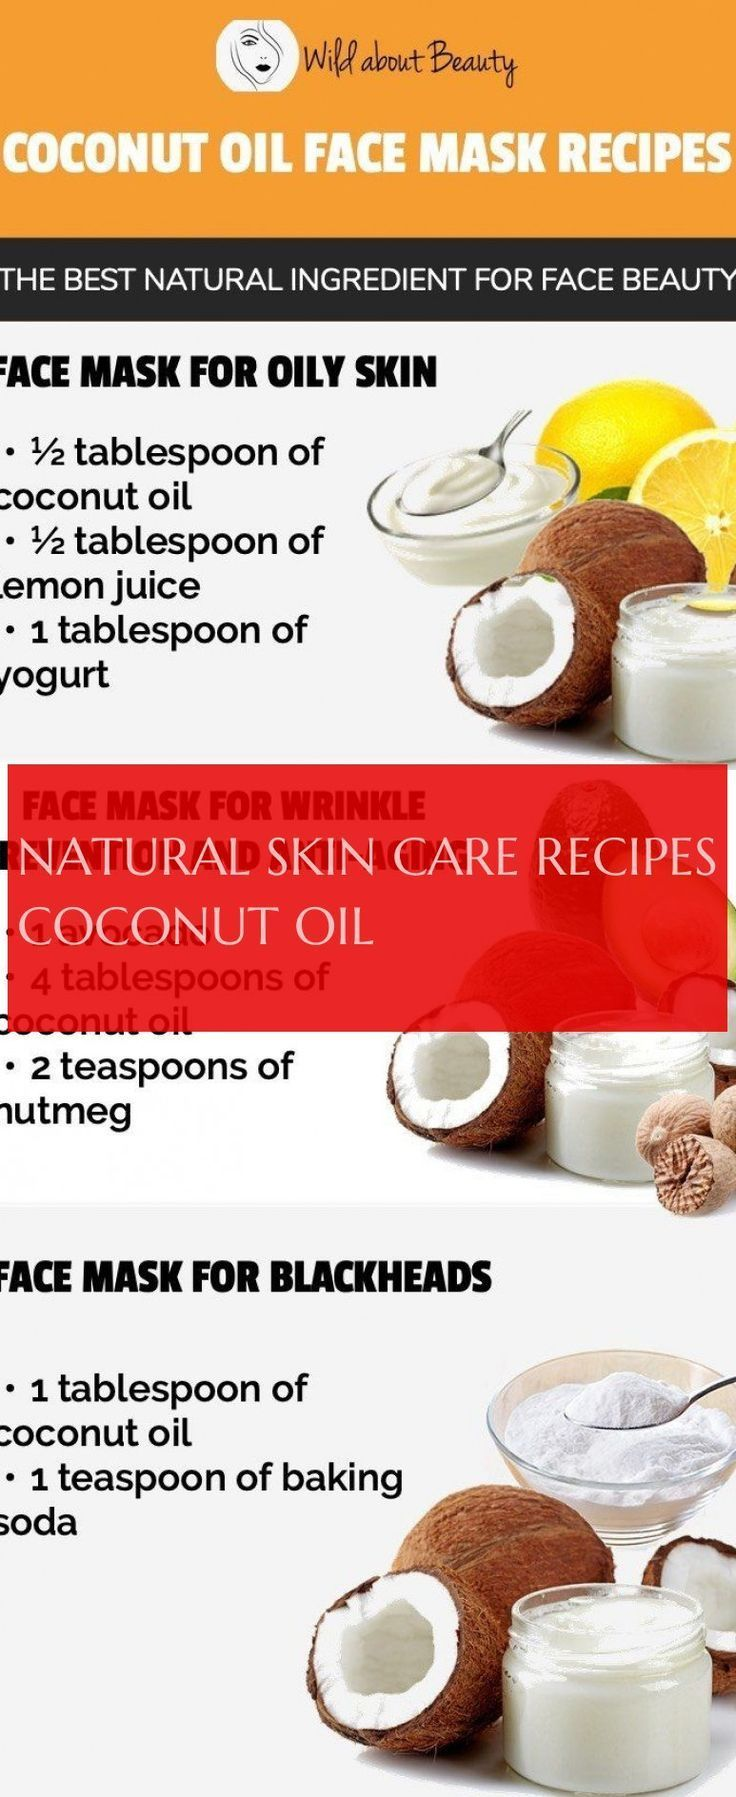 natural skin care recipes coconut oil - natural skin care recipes coconut oil ...  -  Hautpflege-Rezepte